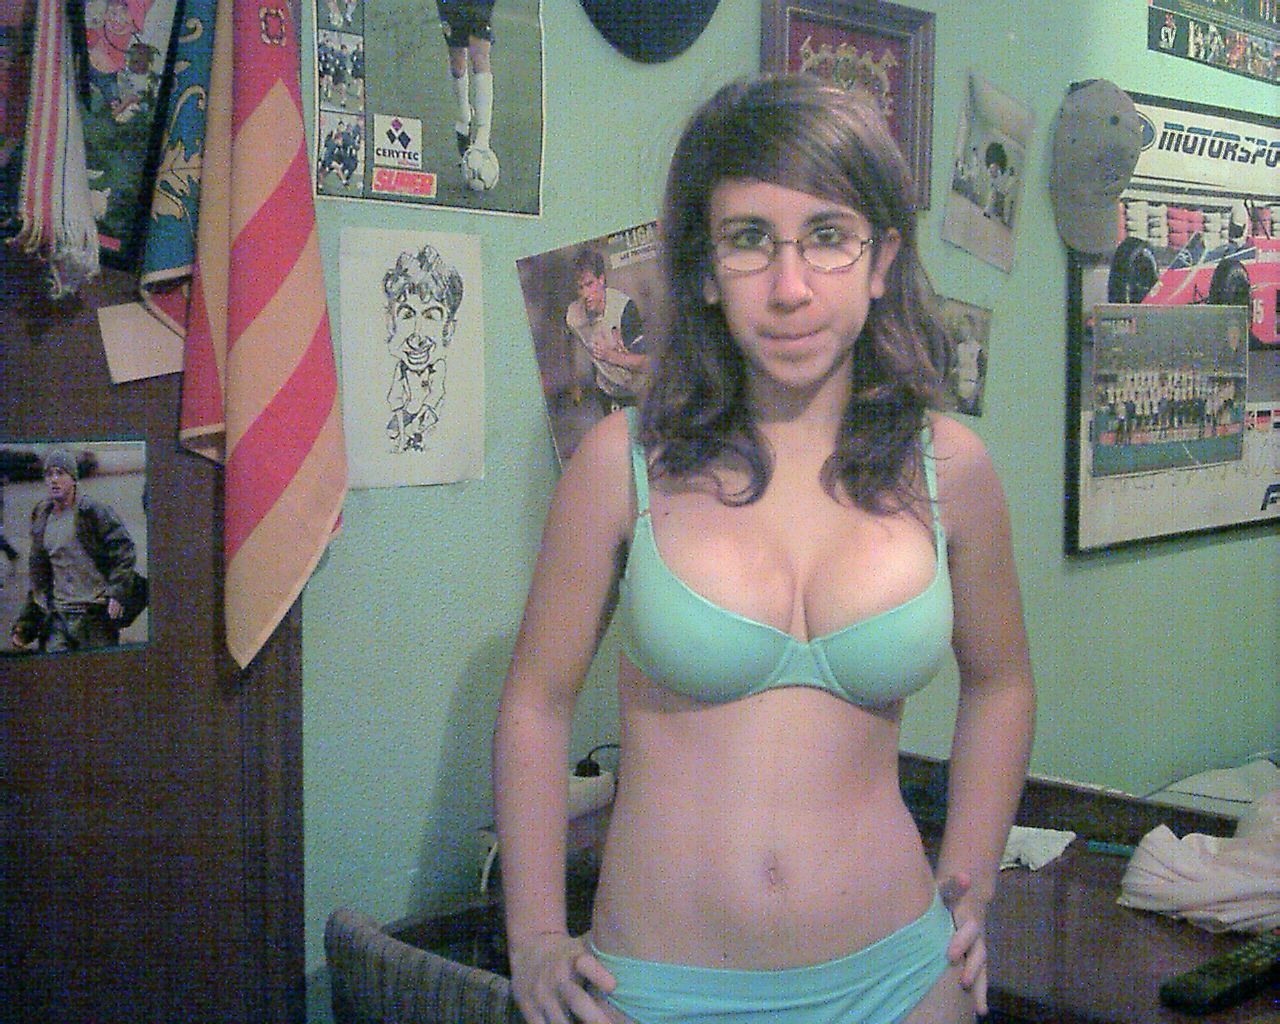 Knows it. Teens with perfect bodies good idea